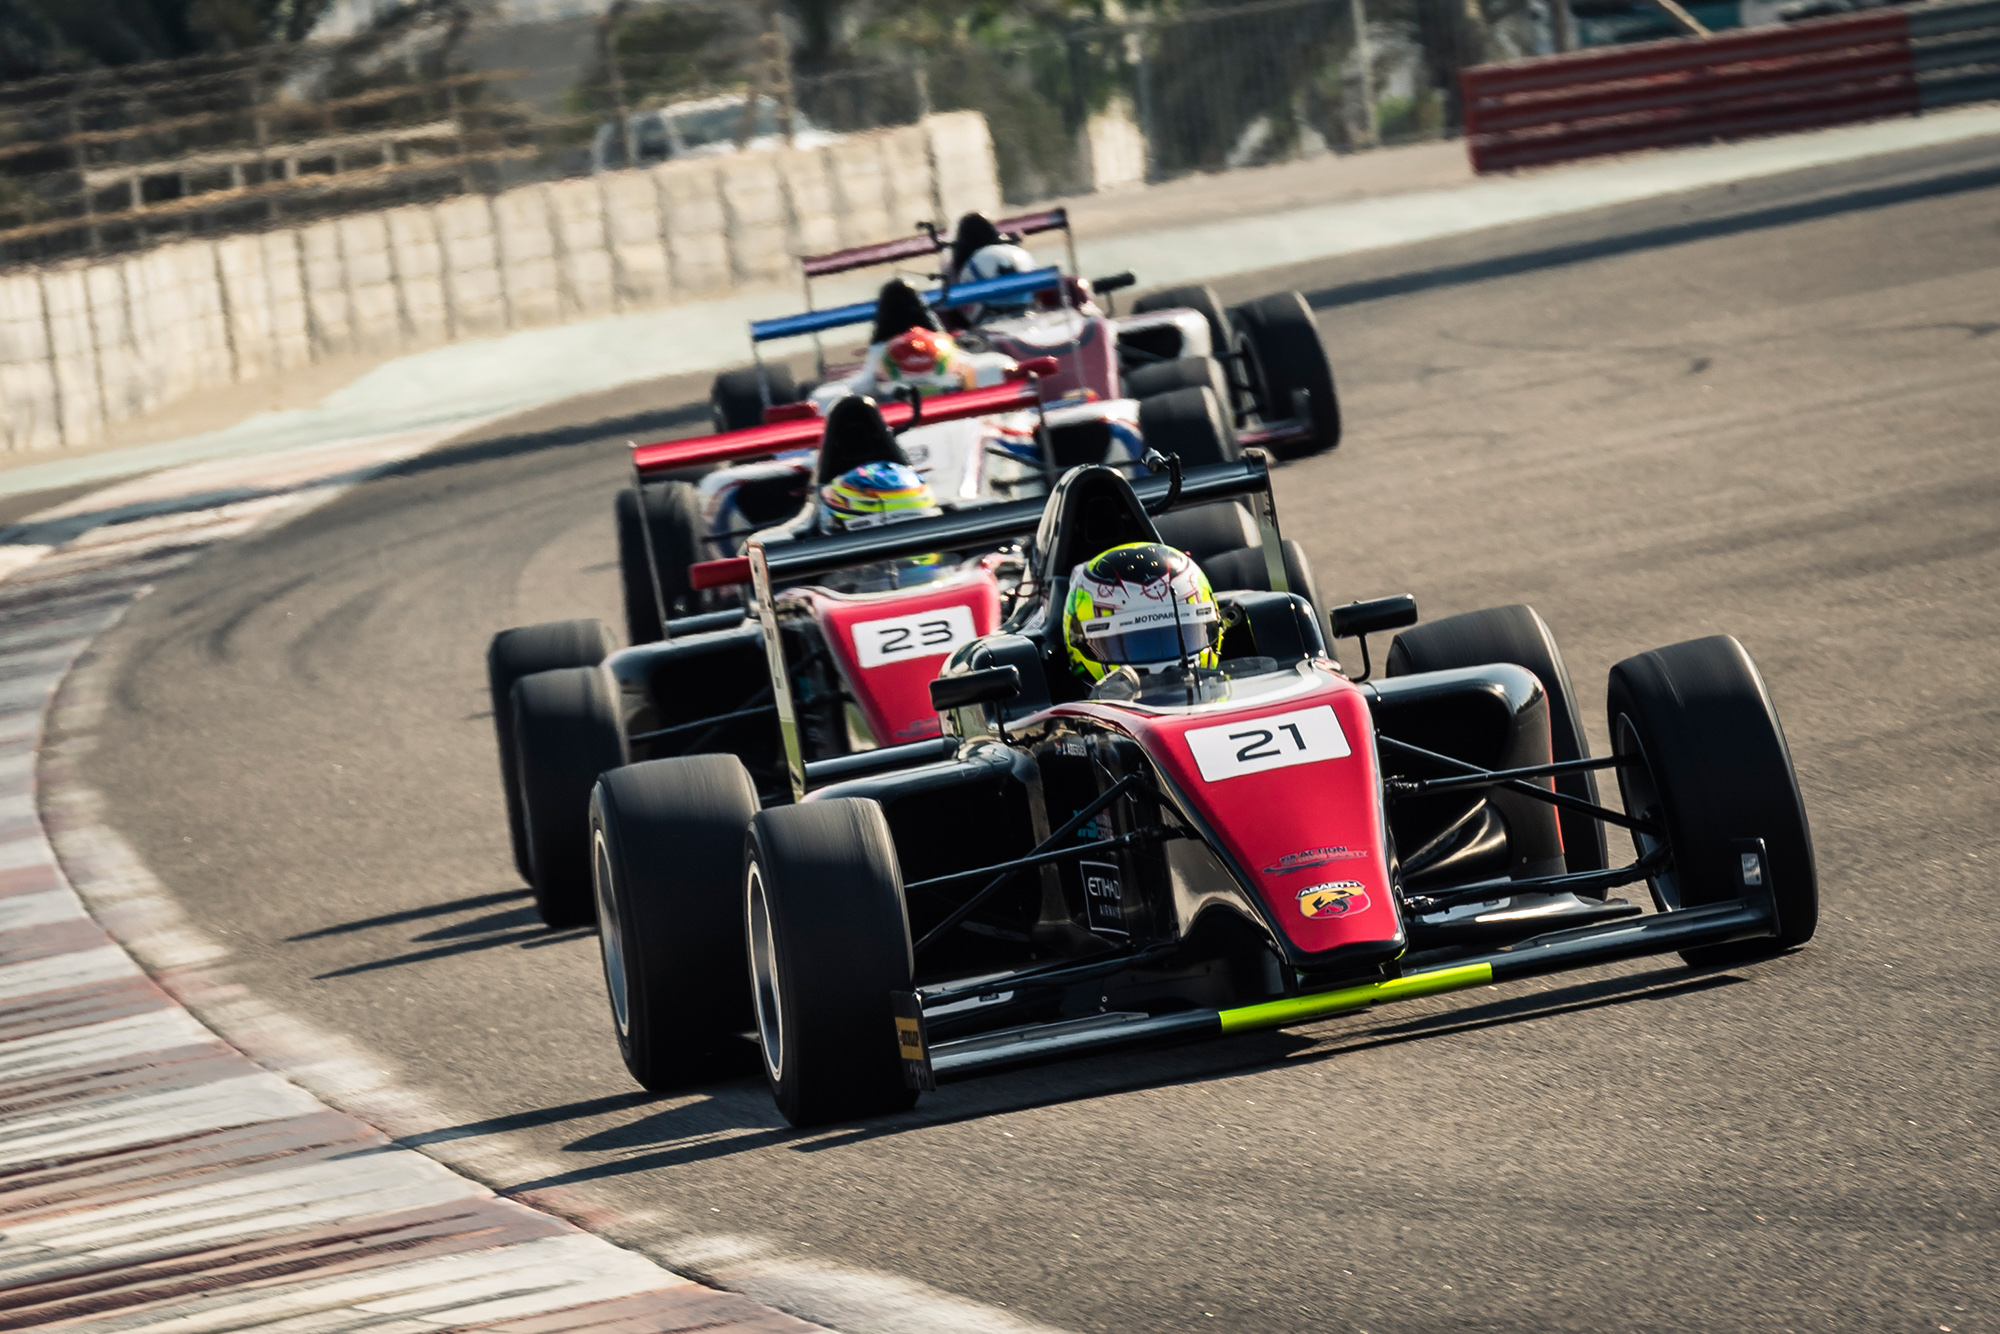 2016 10 30 Racing First Round F4 Abu Dhabi 32 of 38